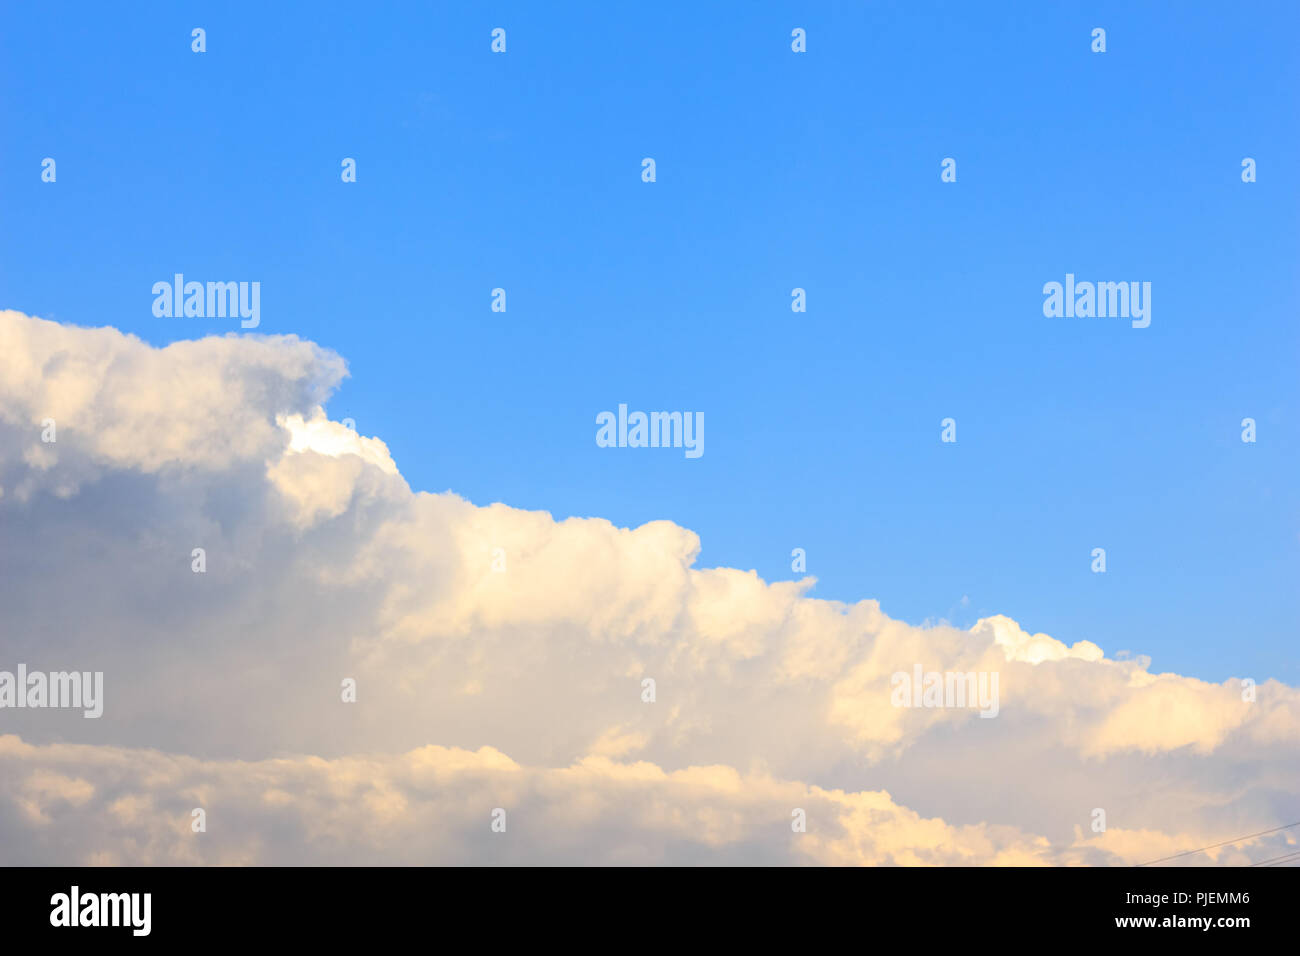 Beautiful sky background with white bright cumulus clouds and blue sky - Stock Image